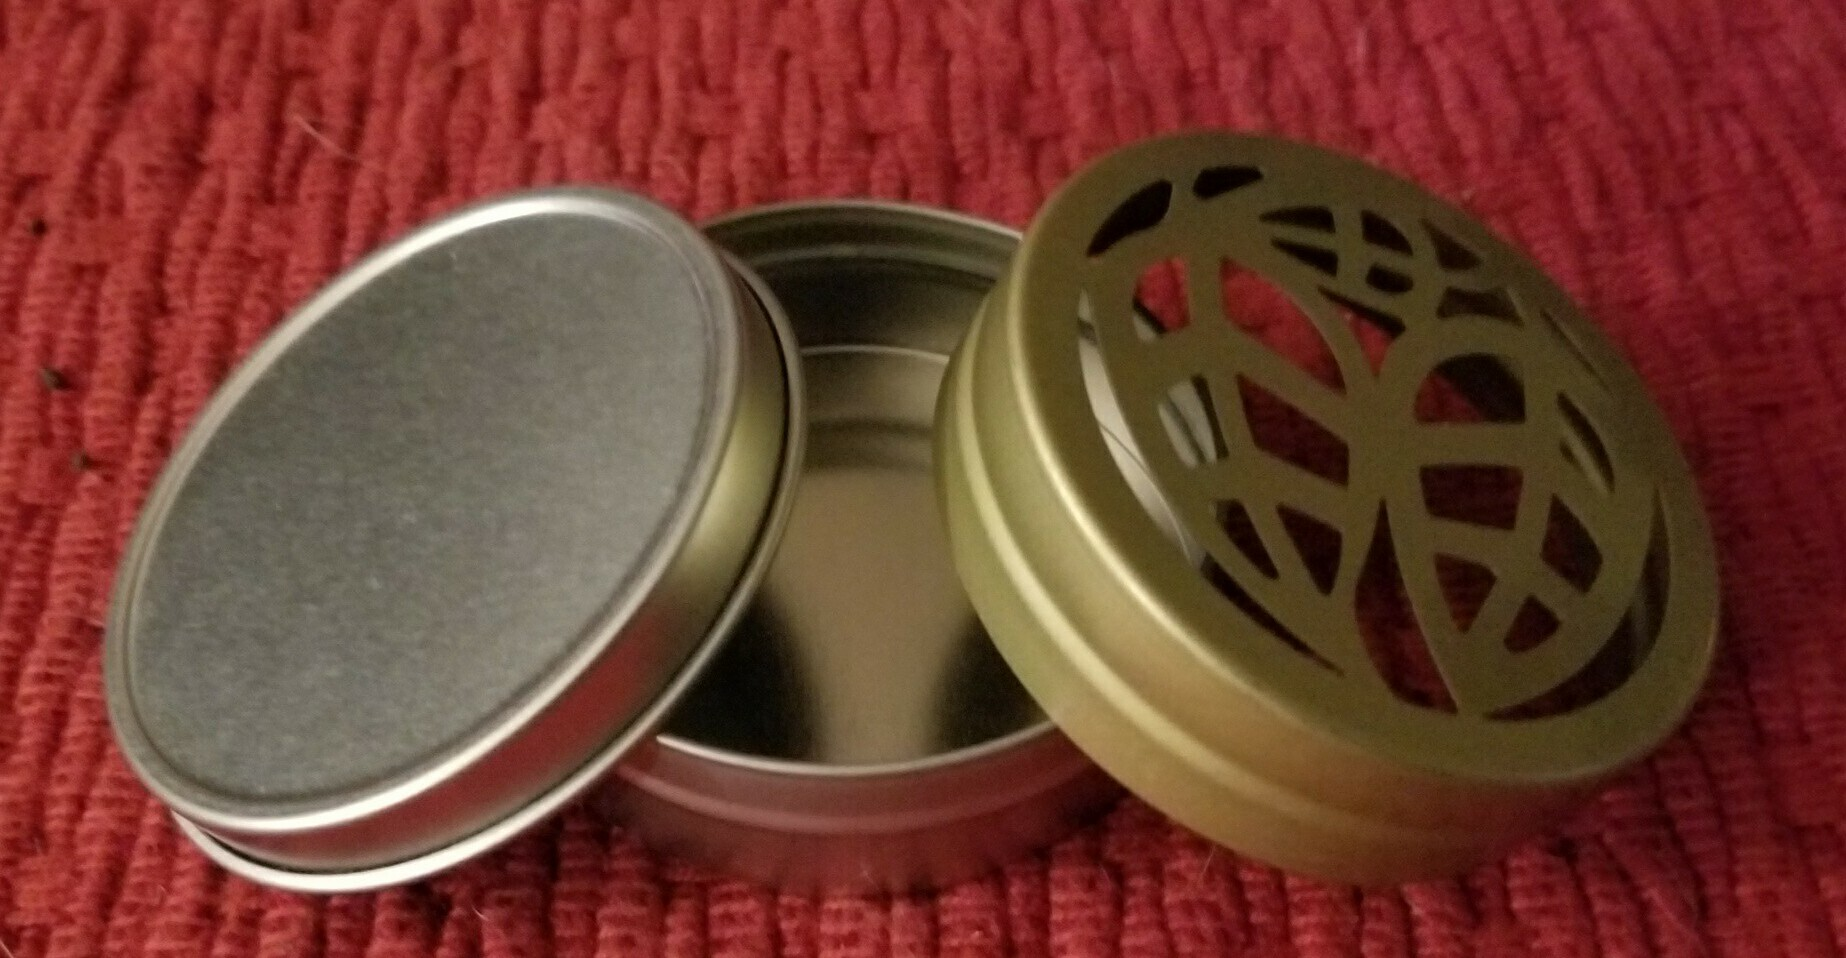 Tin Set (3 piece) with Gold Leaf Lid